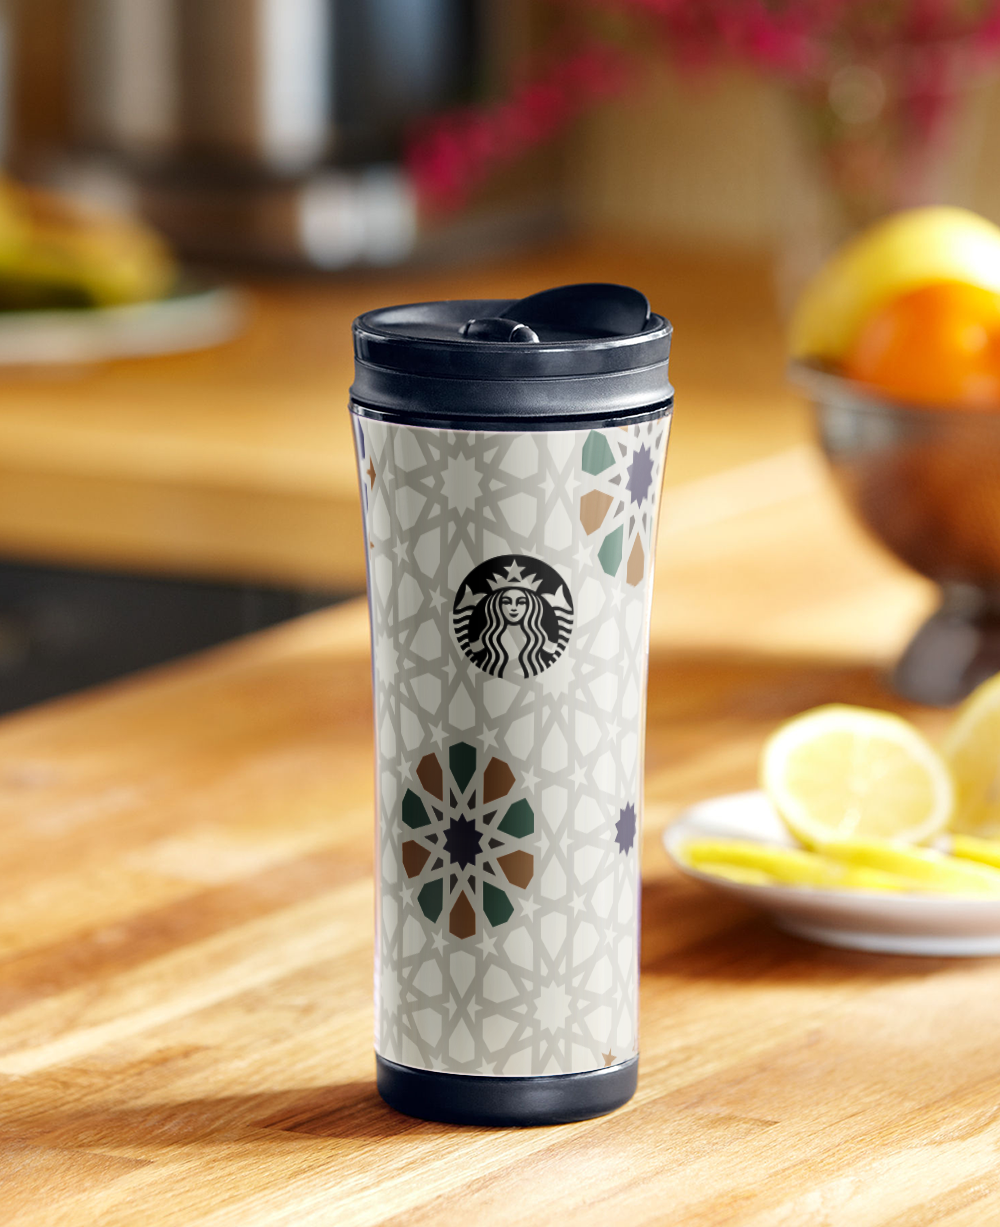 Starbucks Create Your Own Tumbler The